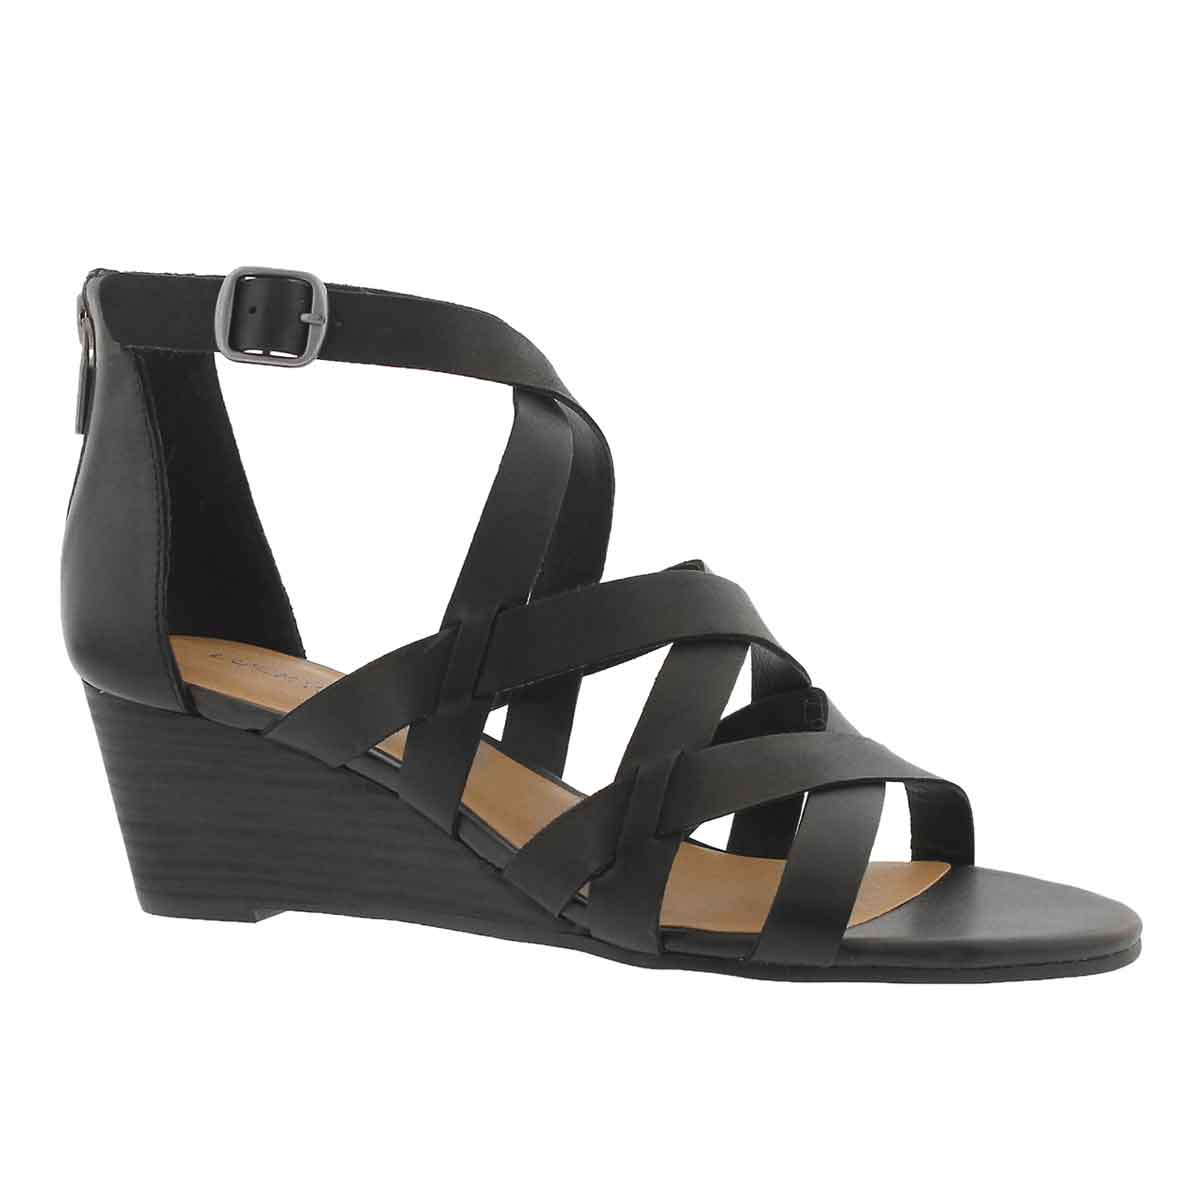 Lds Jewelia black wedge sandal